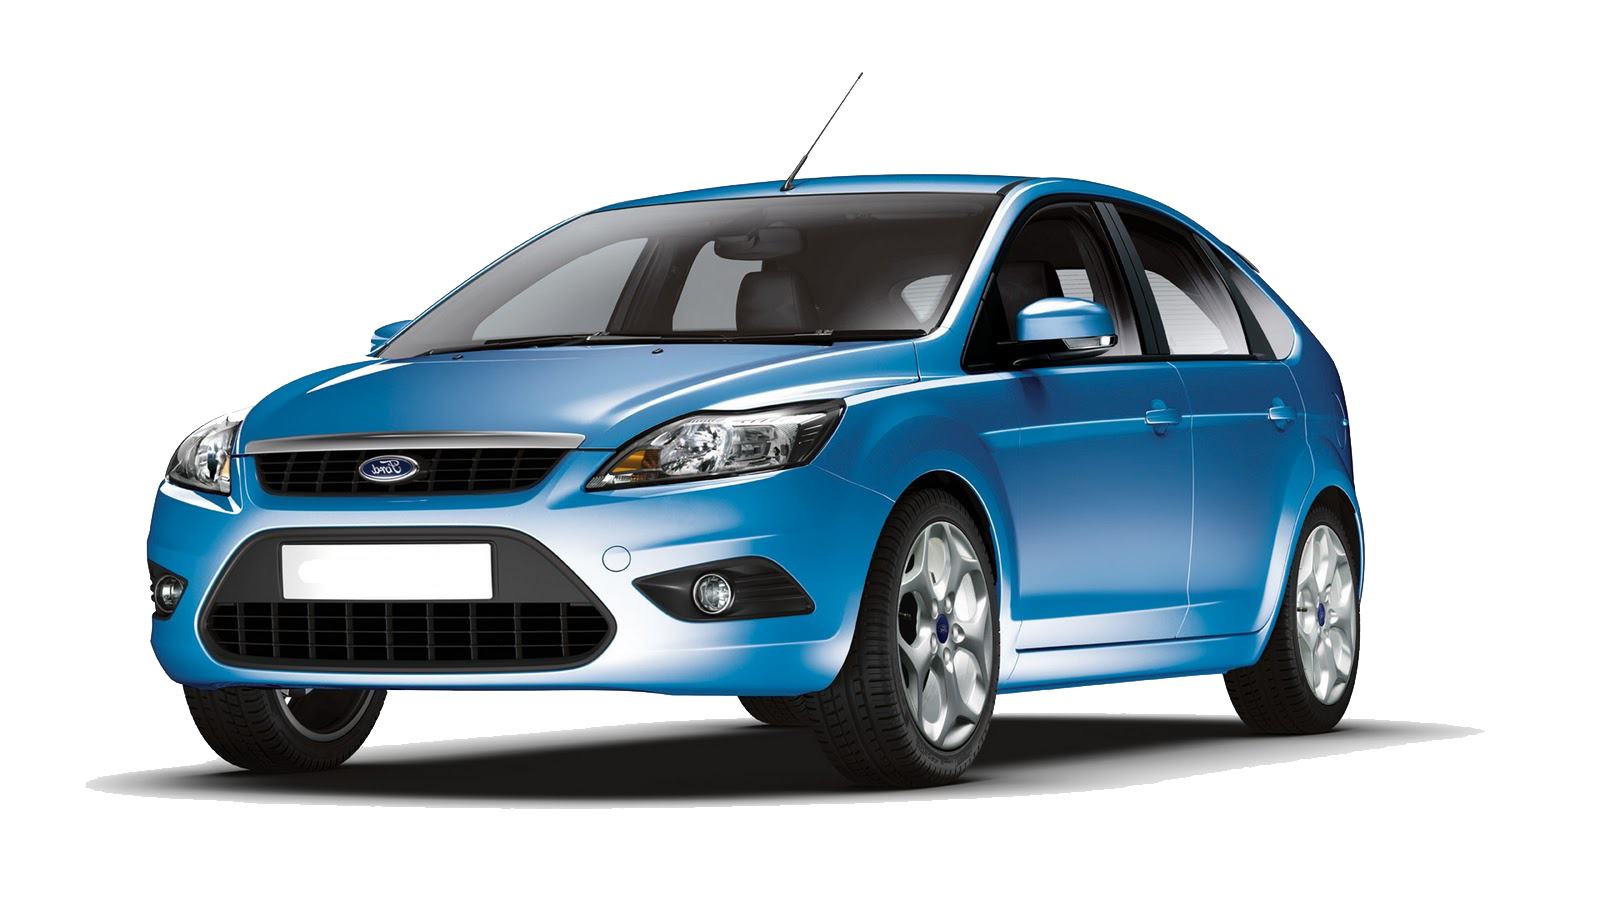 Ford High Quality PNG